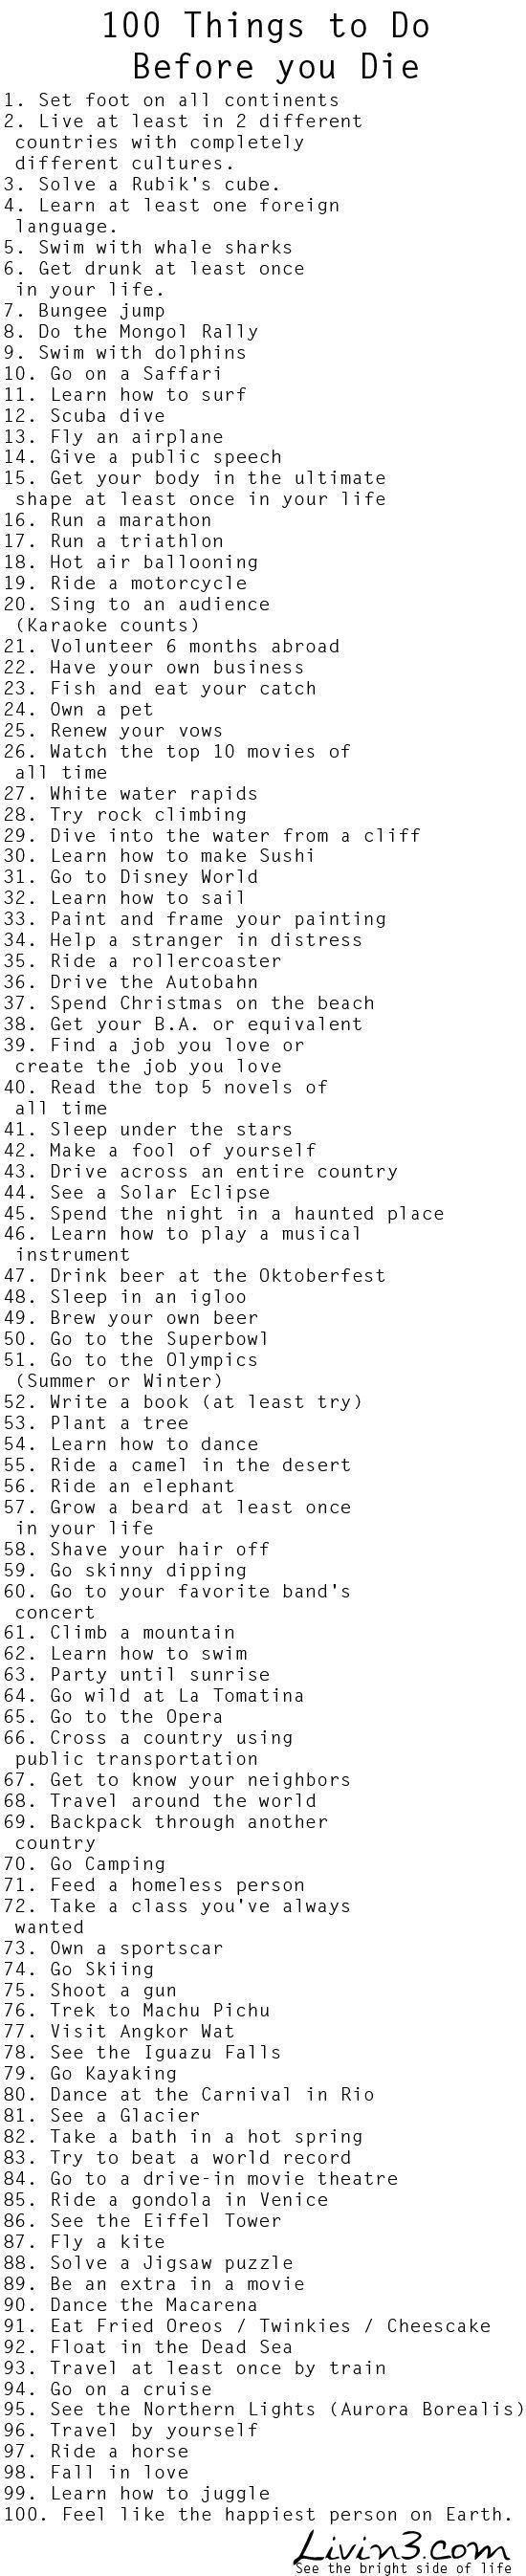 """100 Things to do before I die """"Bucket List"""" Live Your Life. Ya know, except the beard one... by Paola114"""